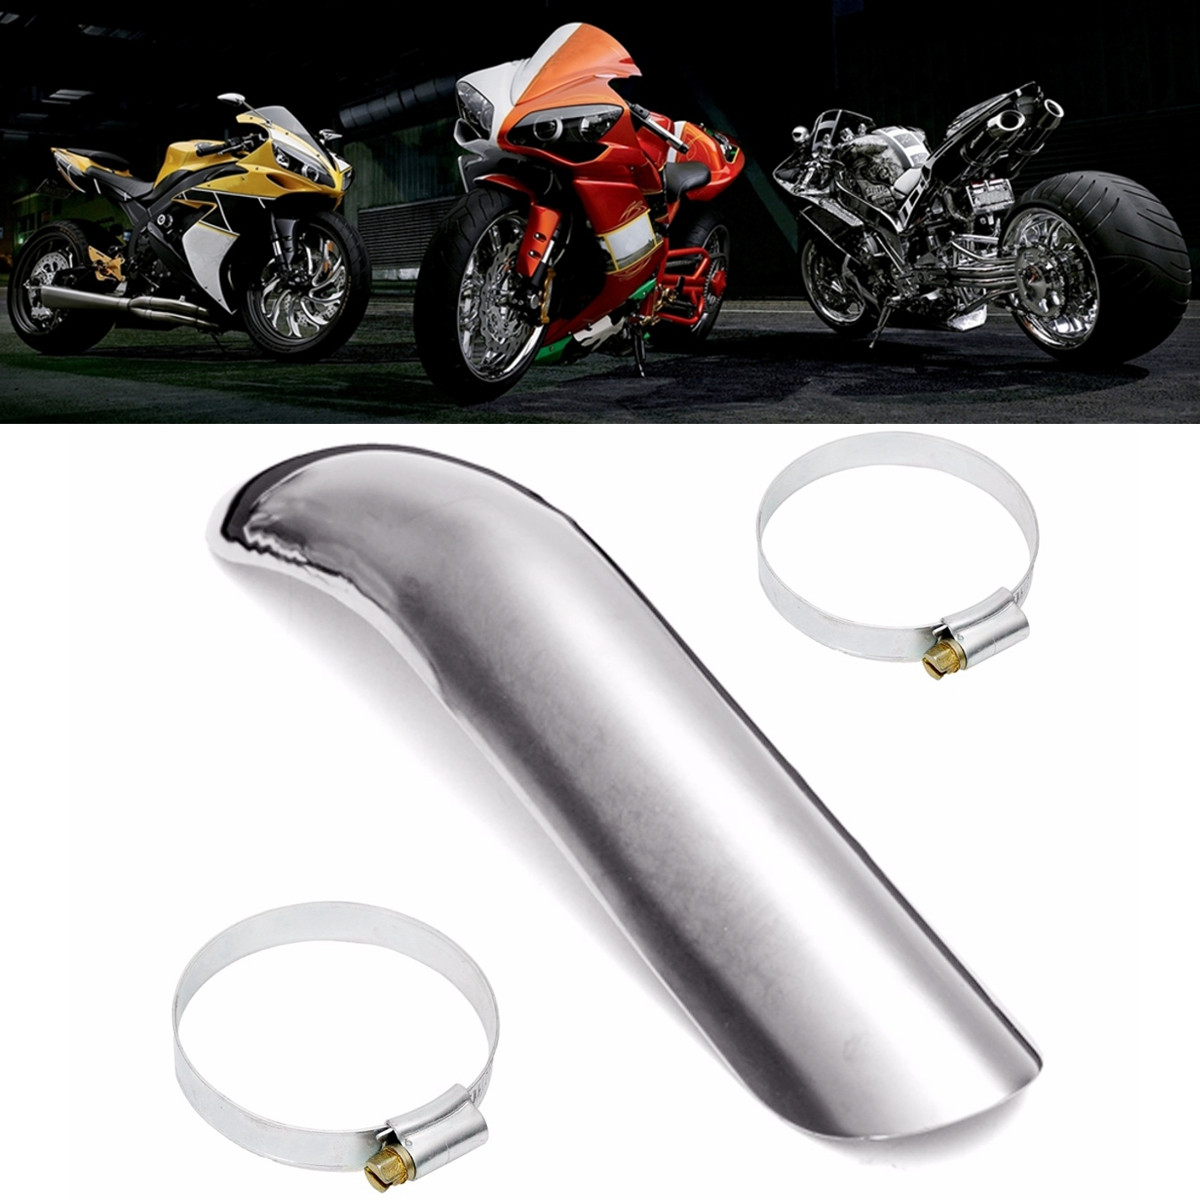 Generic Steel Heat Shield Curve Exhaust Pipe Cover Heel Guard Clamp